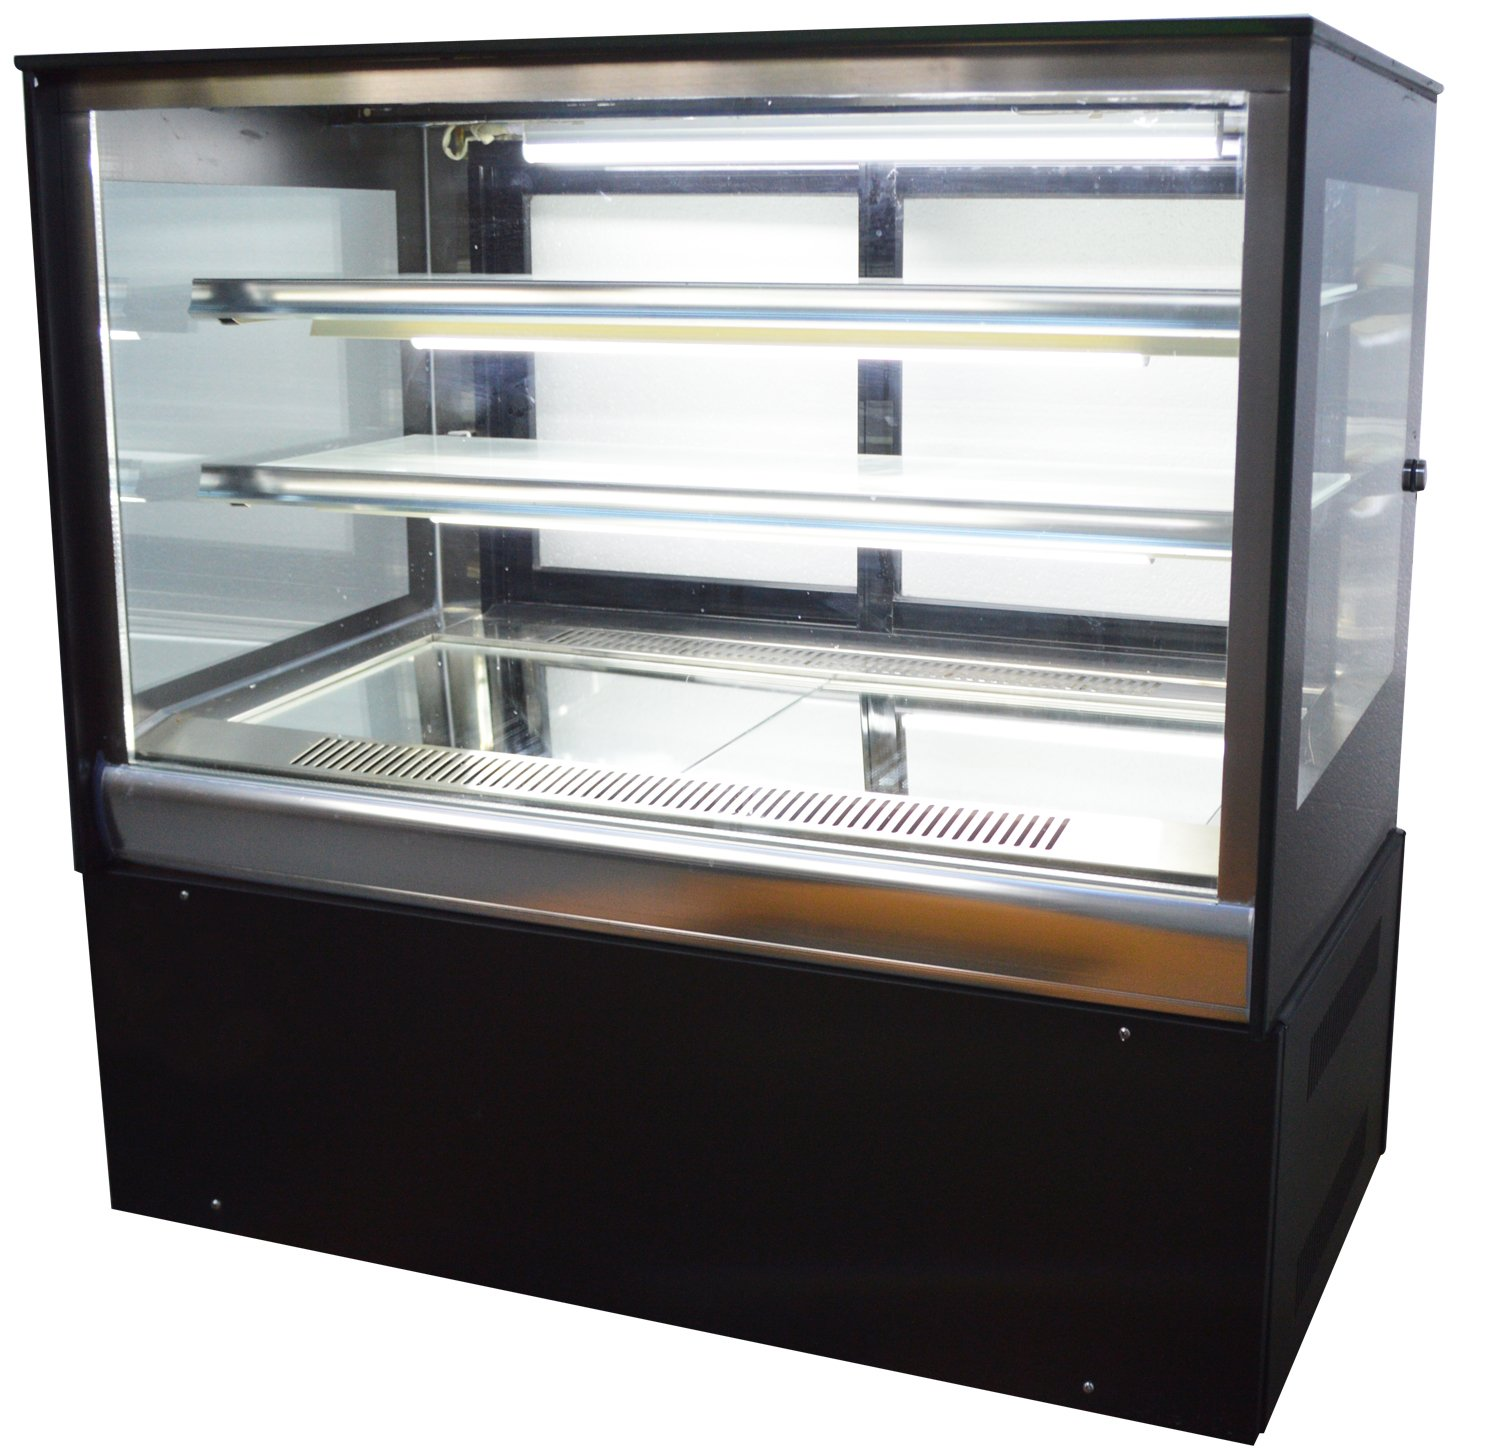 Commercial Countertop Refrigerated Cake Showcase Right Angle Bakery Cabinet Cooling Display Case with LED Light (Item#210080)